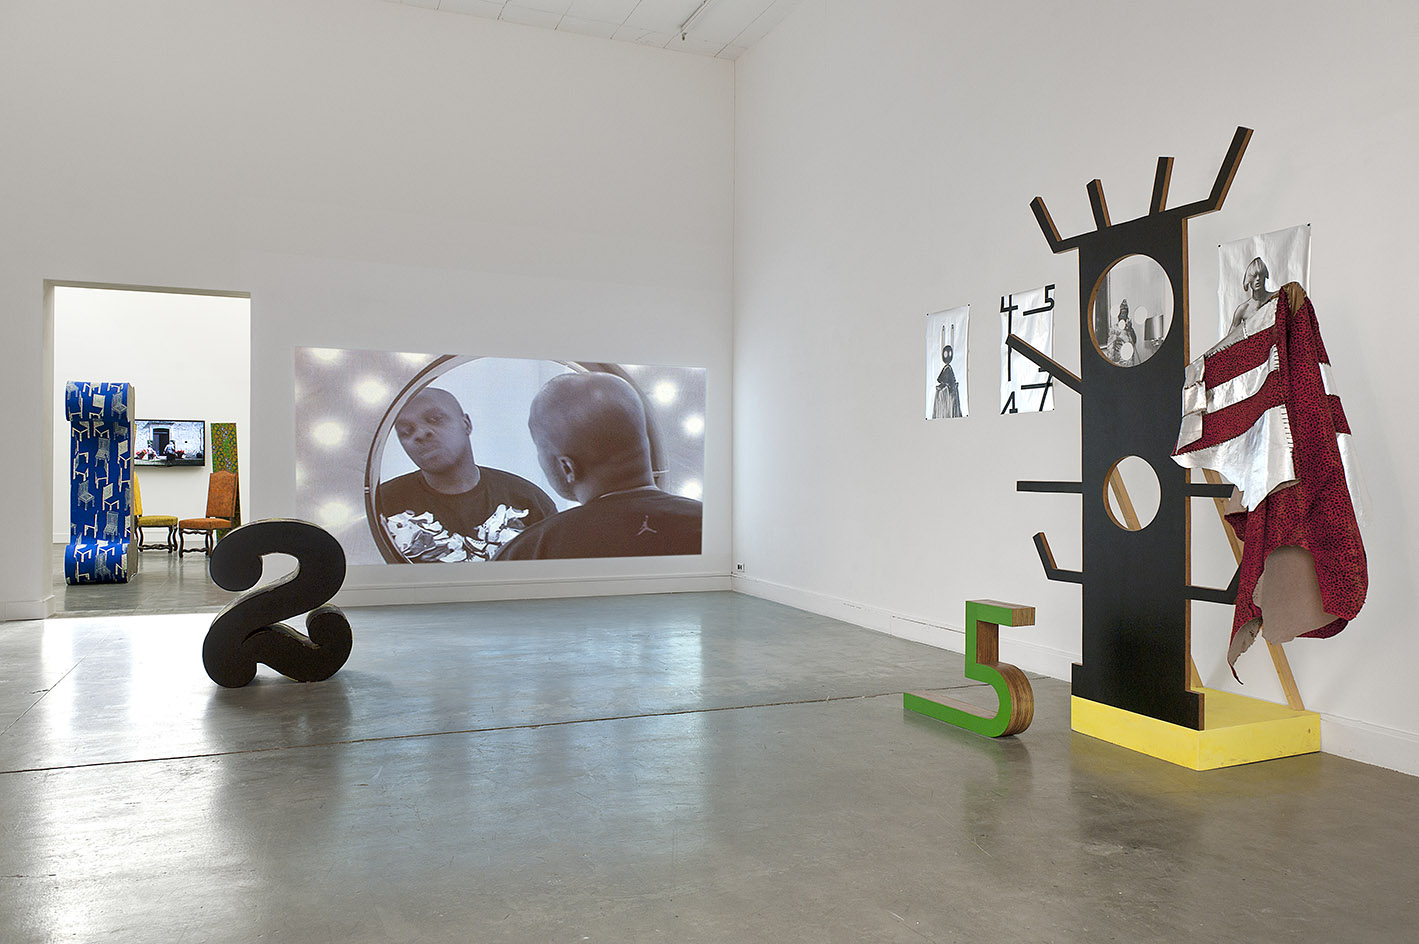 Grenoble Magasin C L E A R I N G New York Brussels Lili Reynaud Dewar 2012 Le